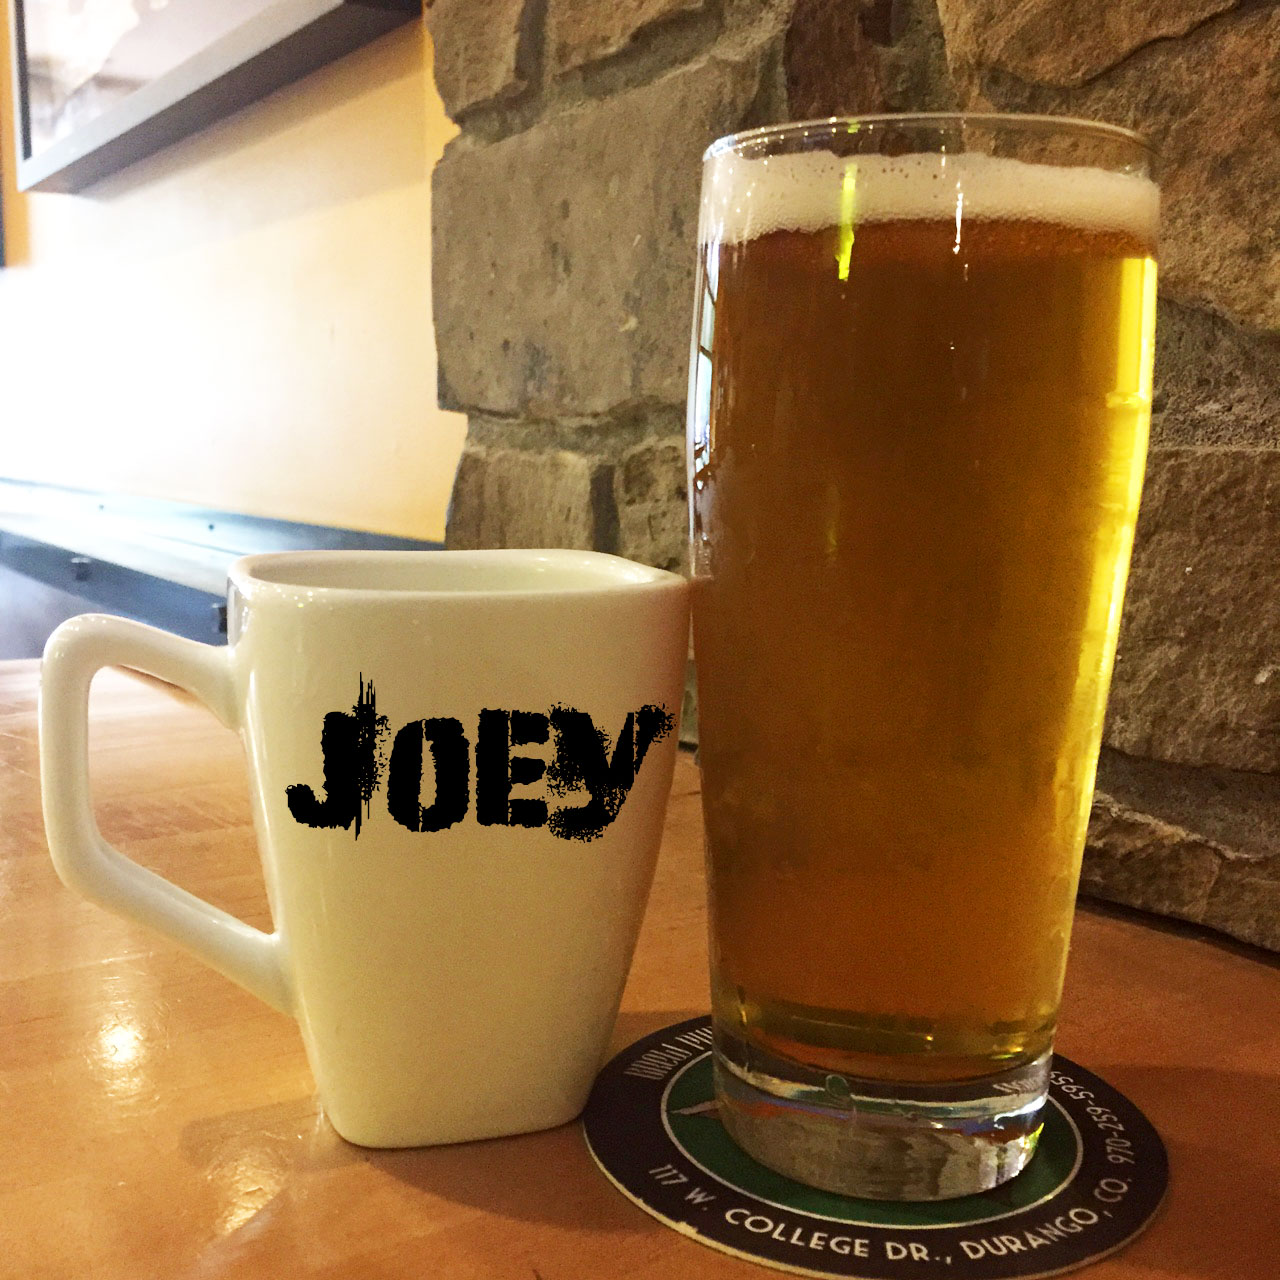 Joey - An easy drinking Kolsch with a hint of coffee5.0% ABV 20 IBU